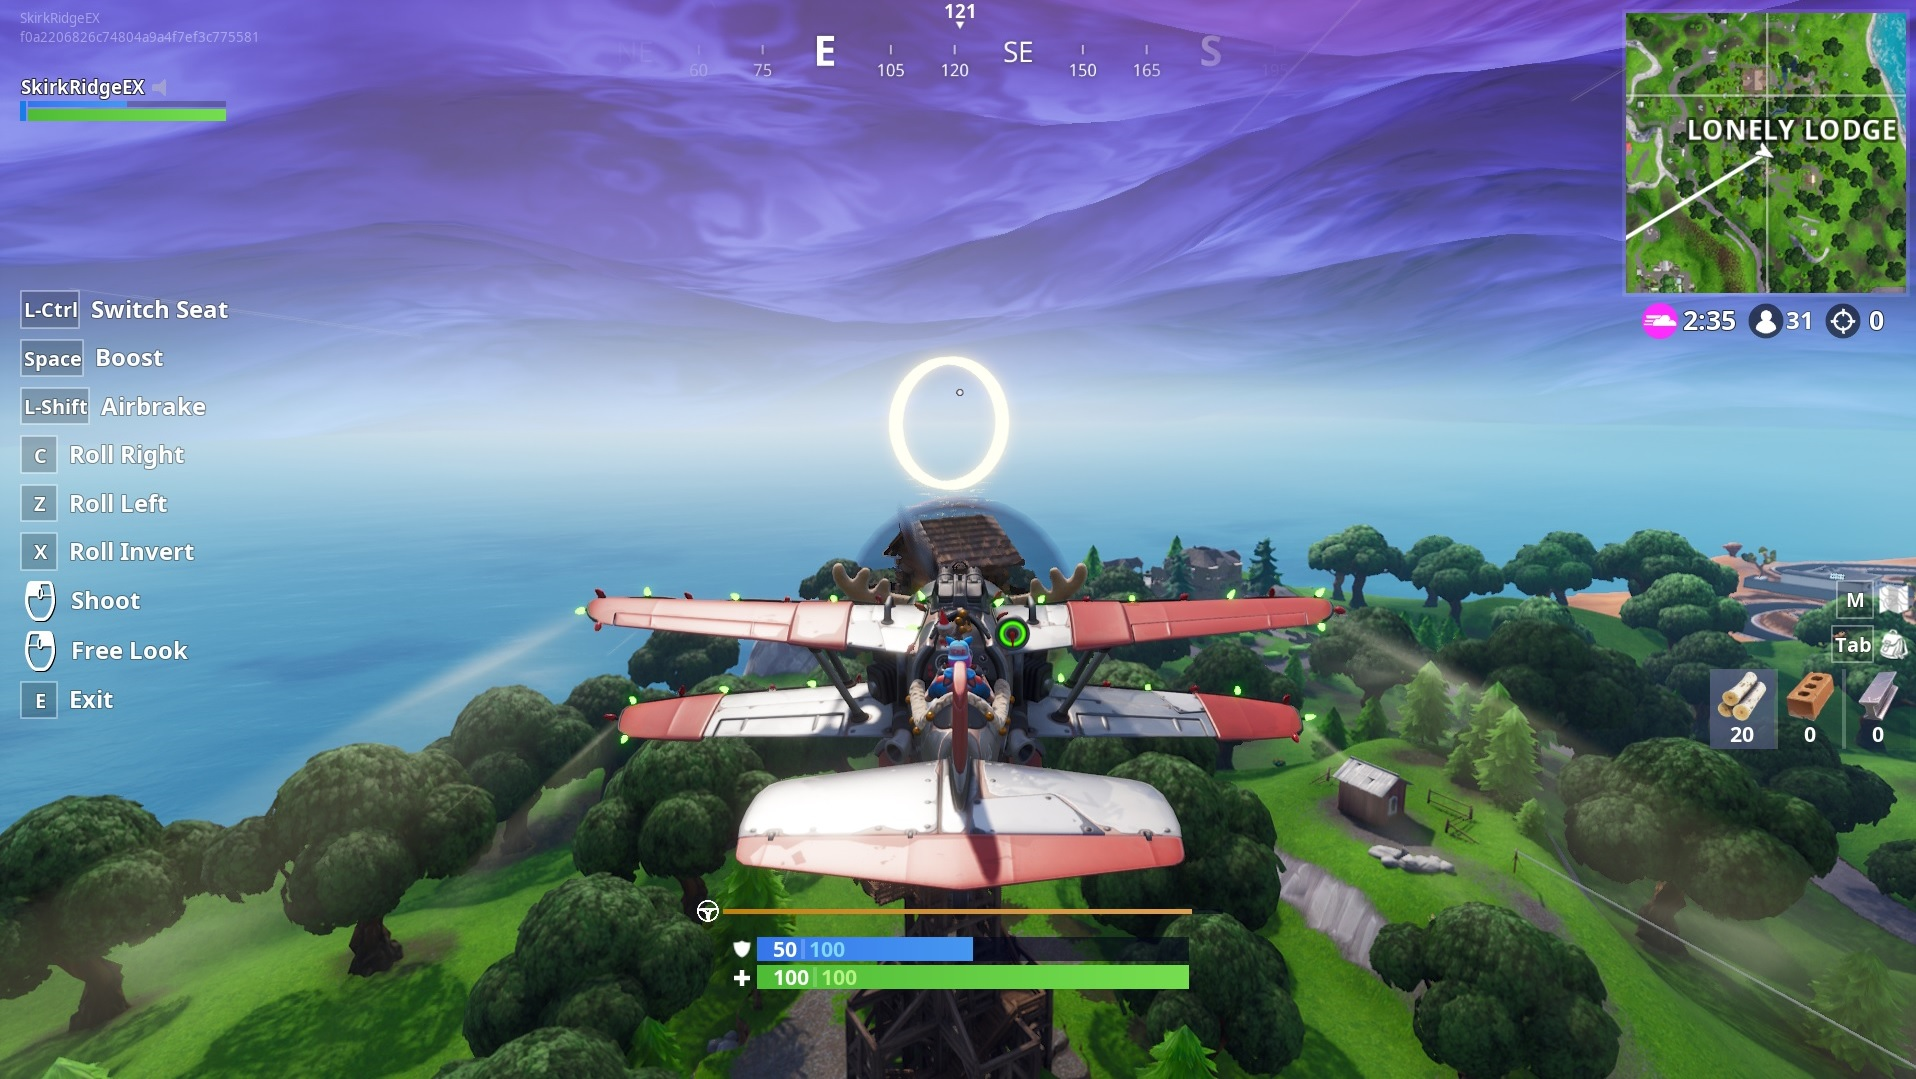 Player about to fly through a golden ring near Lonely Lodge.